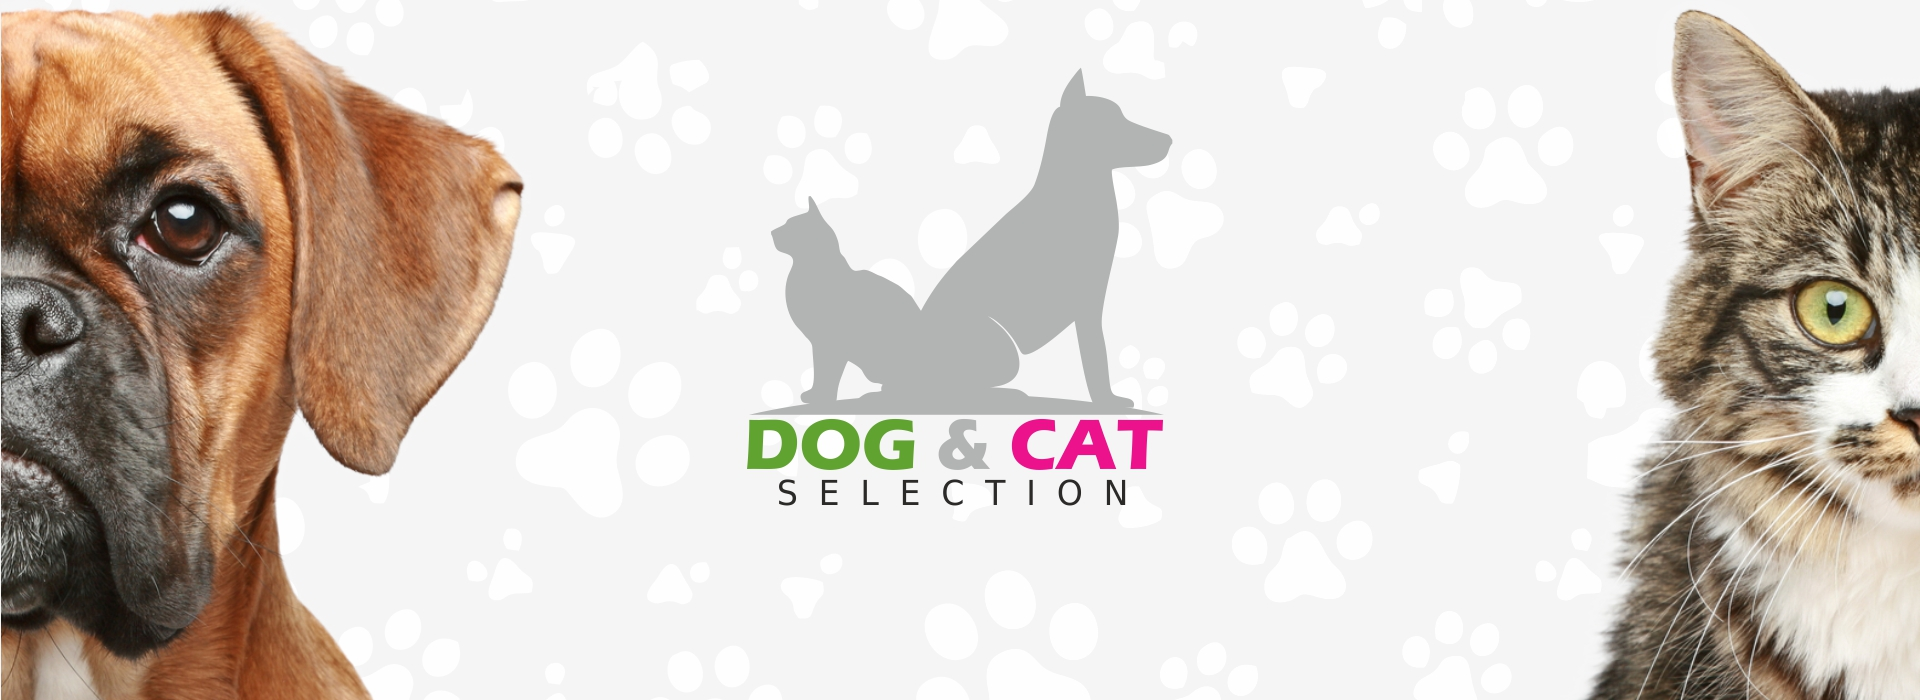 Dog and Cat selection prodotti per animali